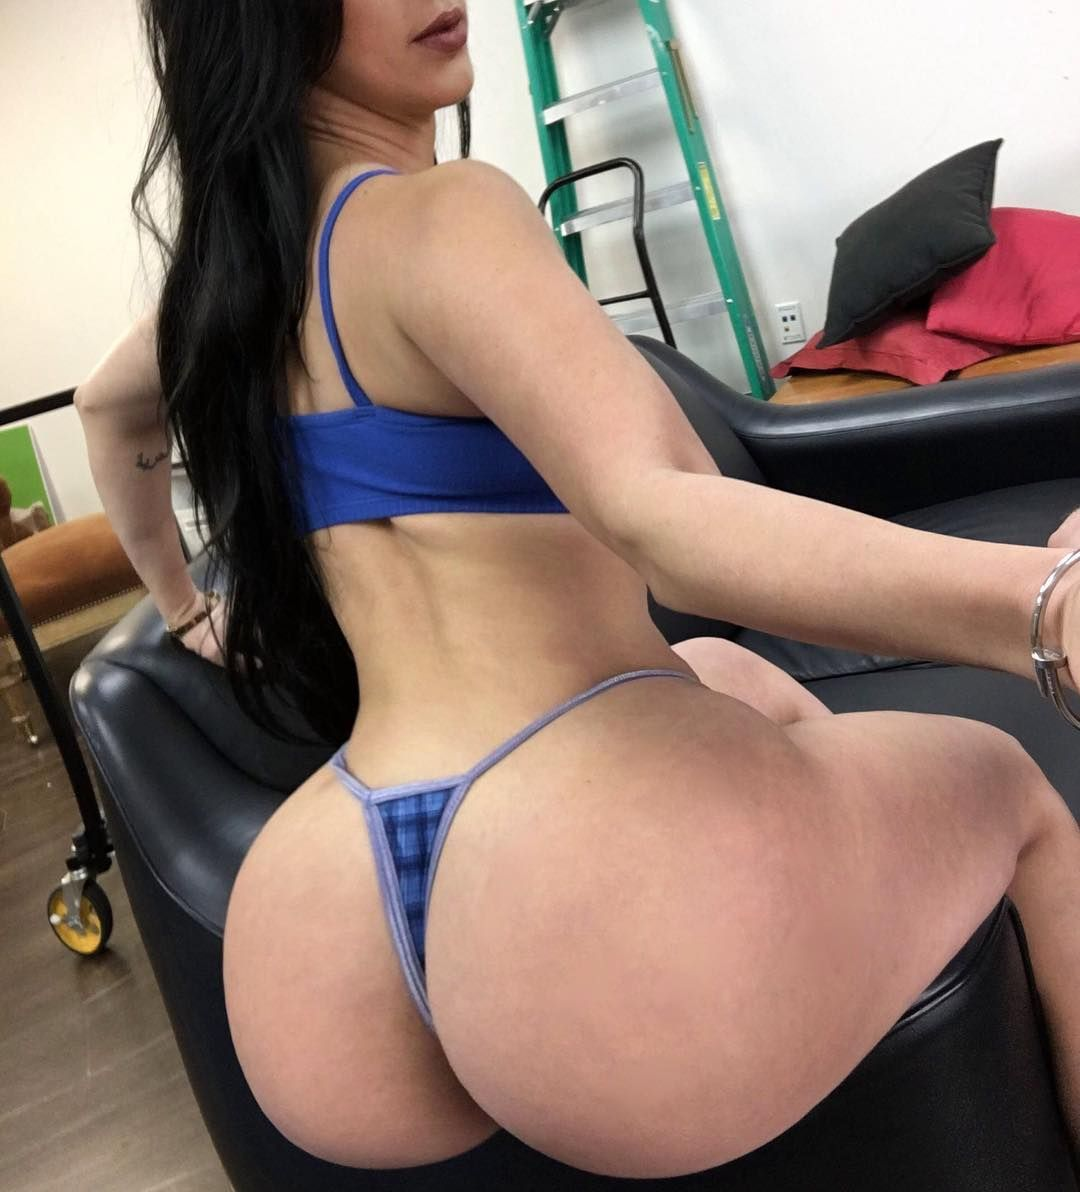 Big butt valerie kay have an hard ride with dildo 7